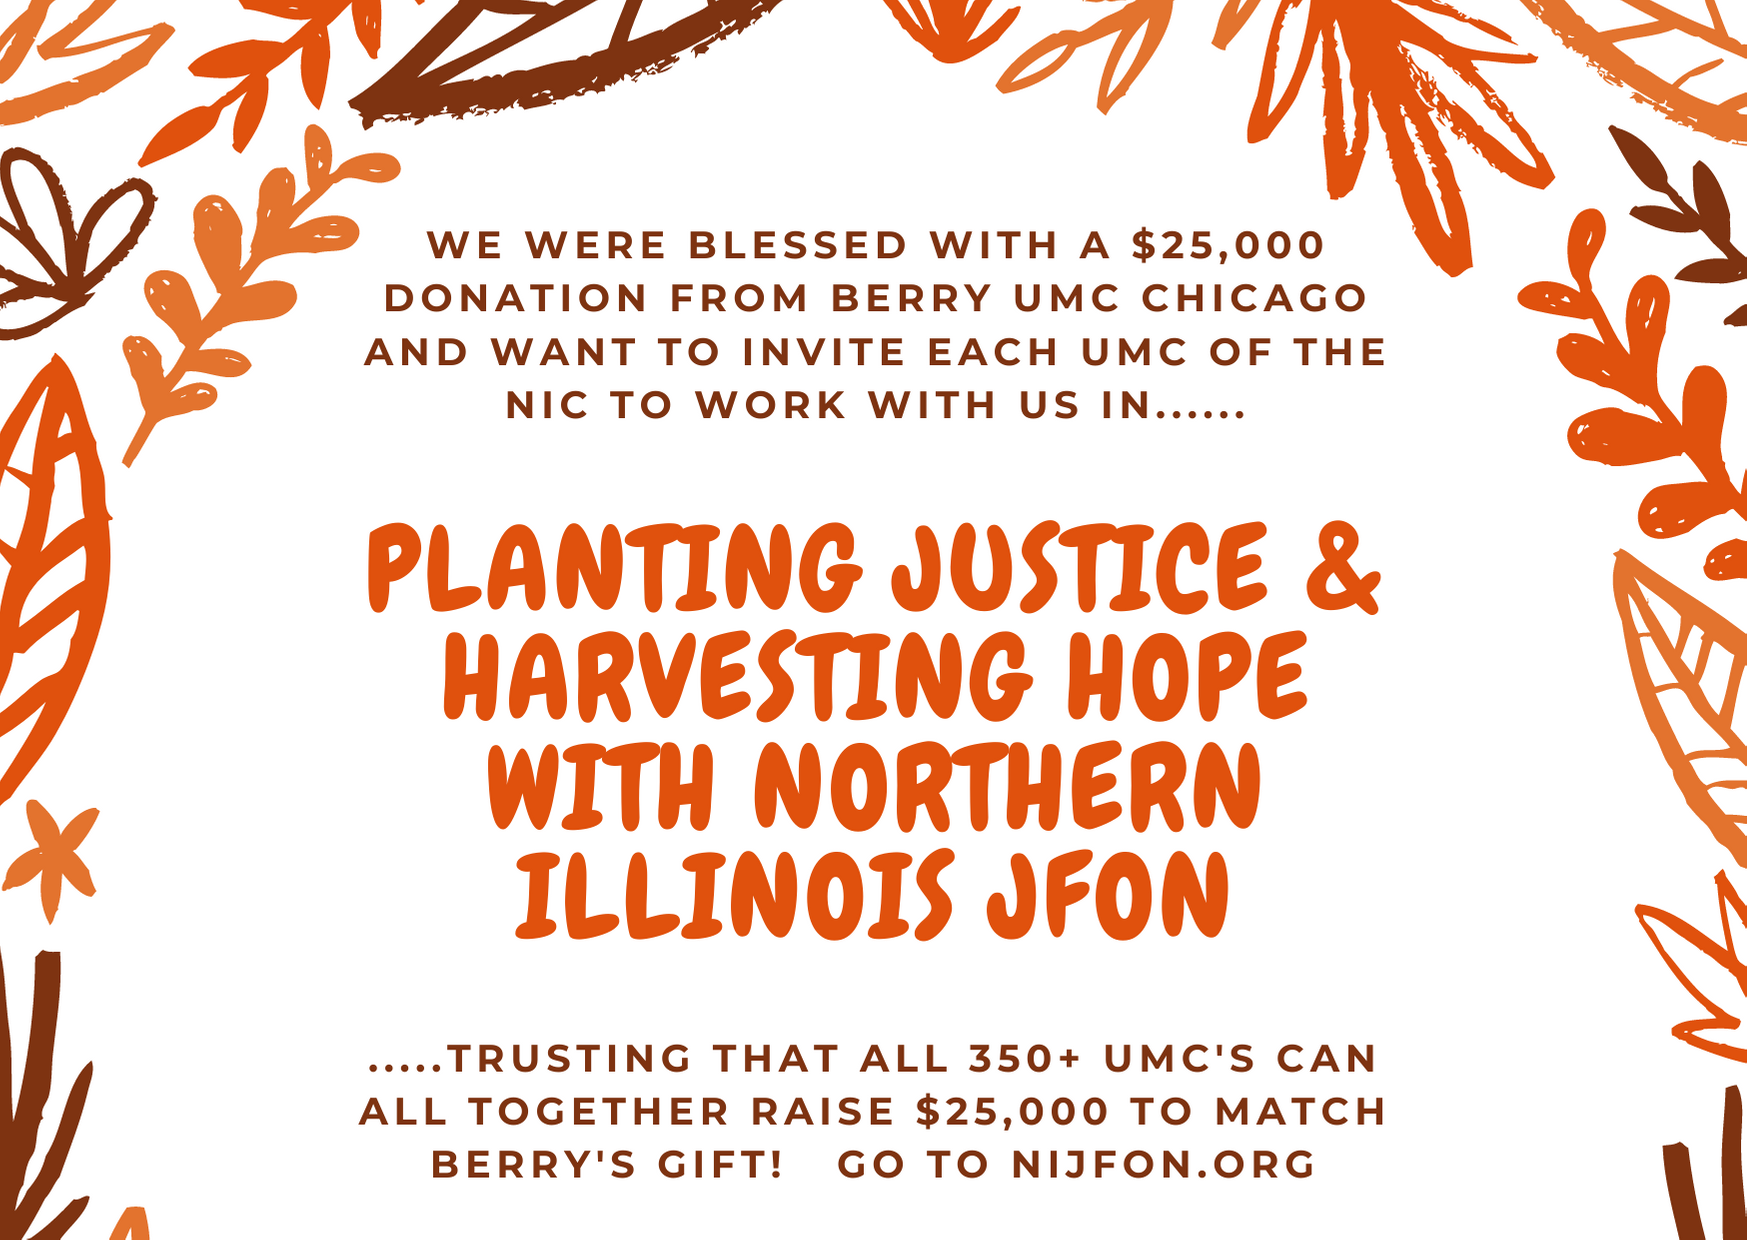 Planting Justice & Harvesting Hope in the NIC-UMC image